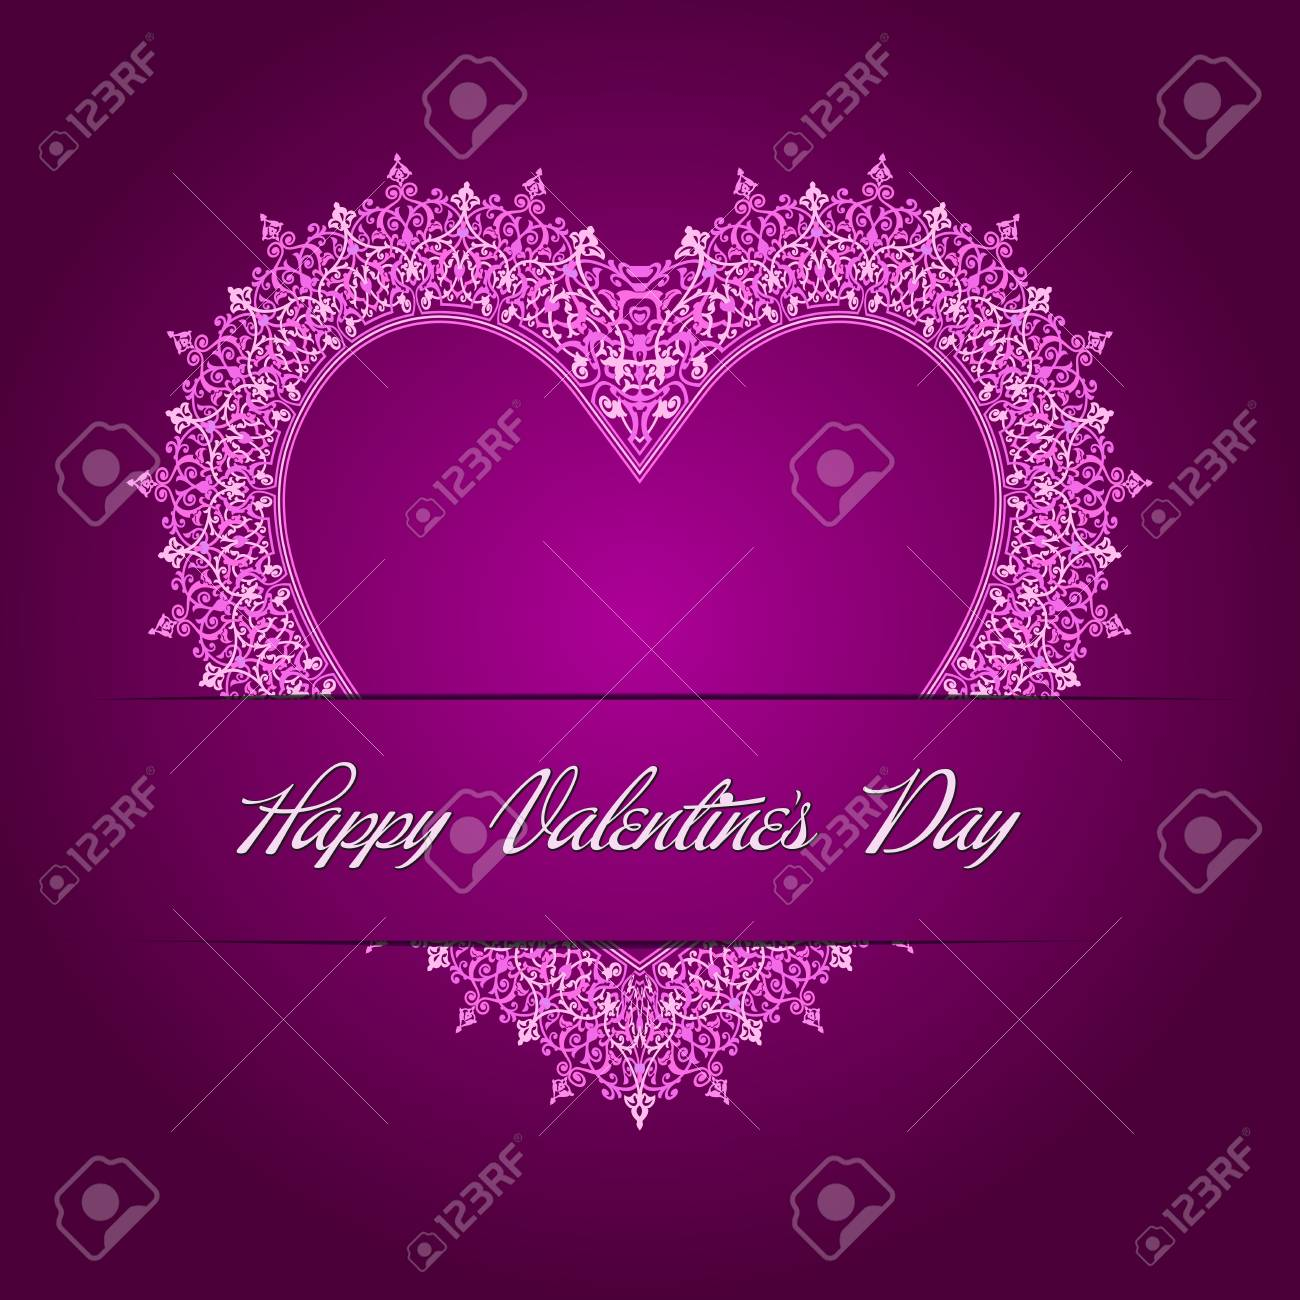 Valentine s Day Card Stock Vector - 26002207